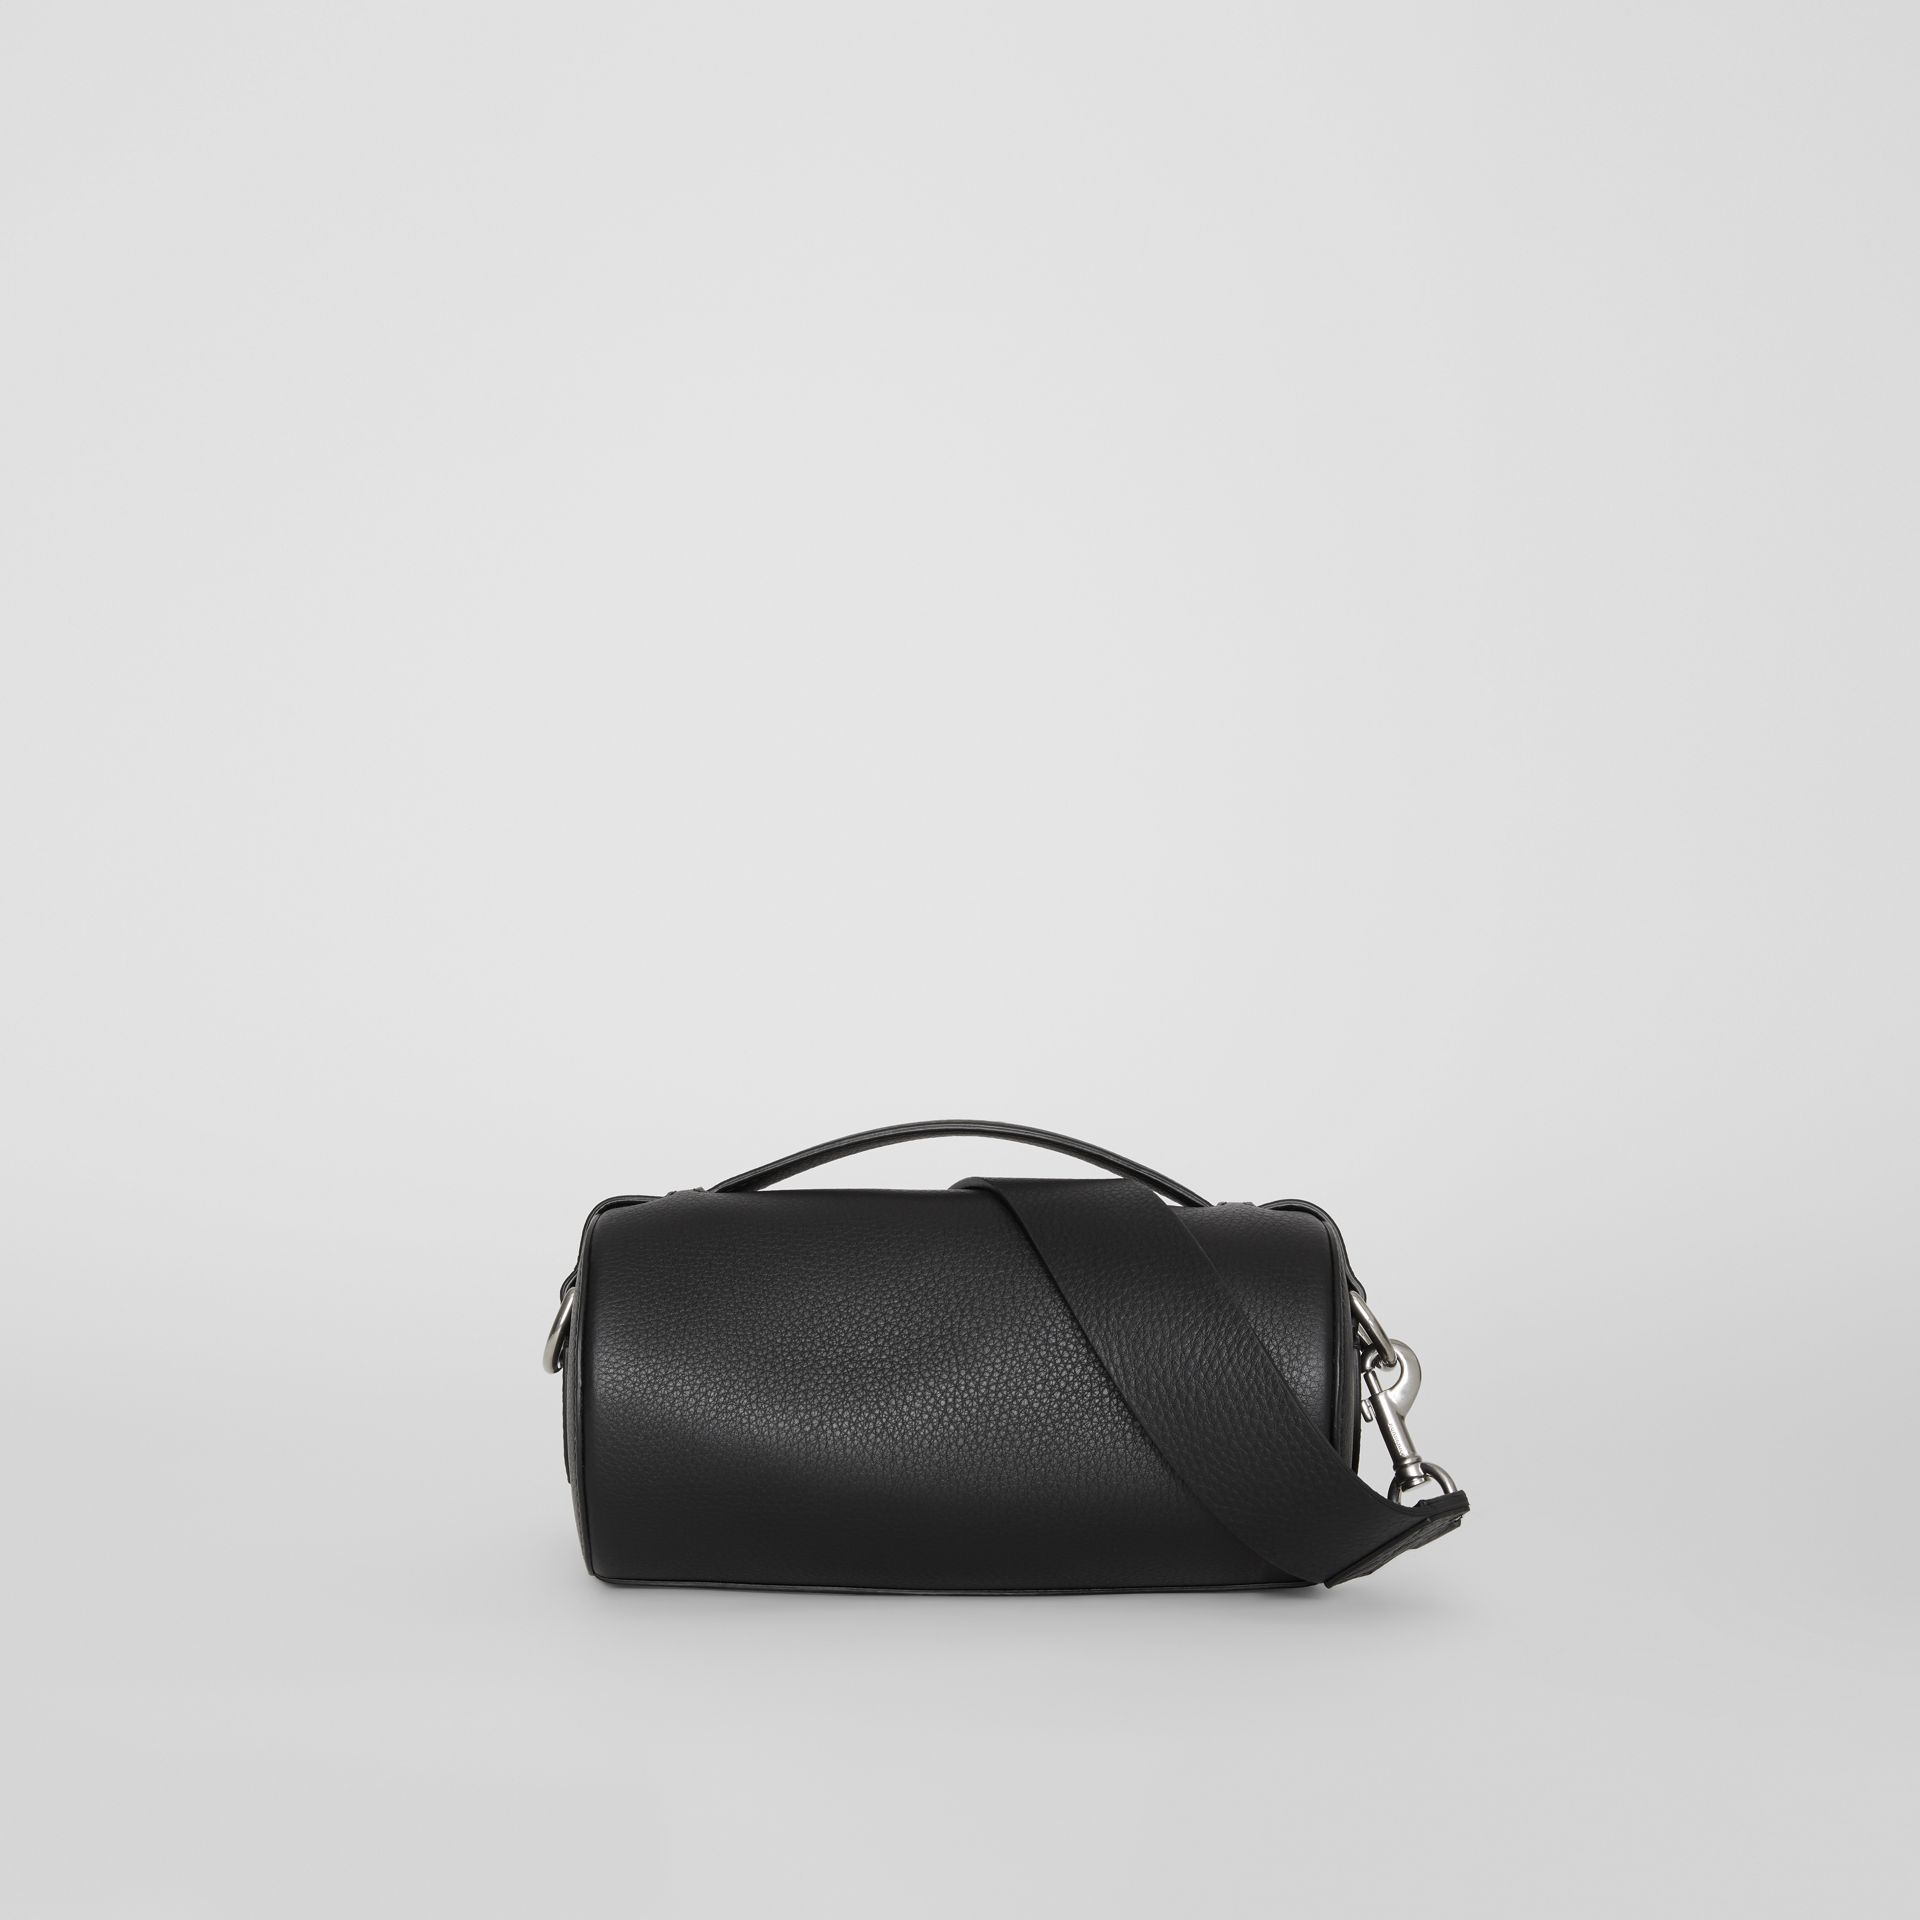 Sac The Barrel en cuir (Noir) - Femme | Burberry - photo de la galerie 7